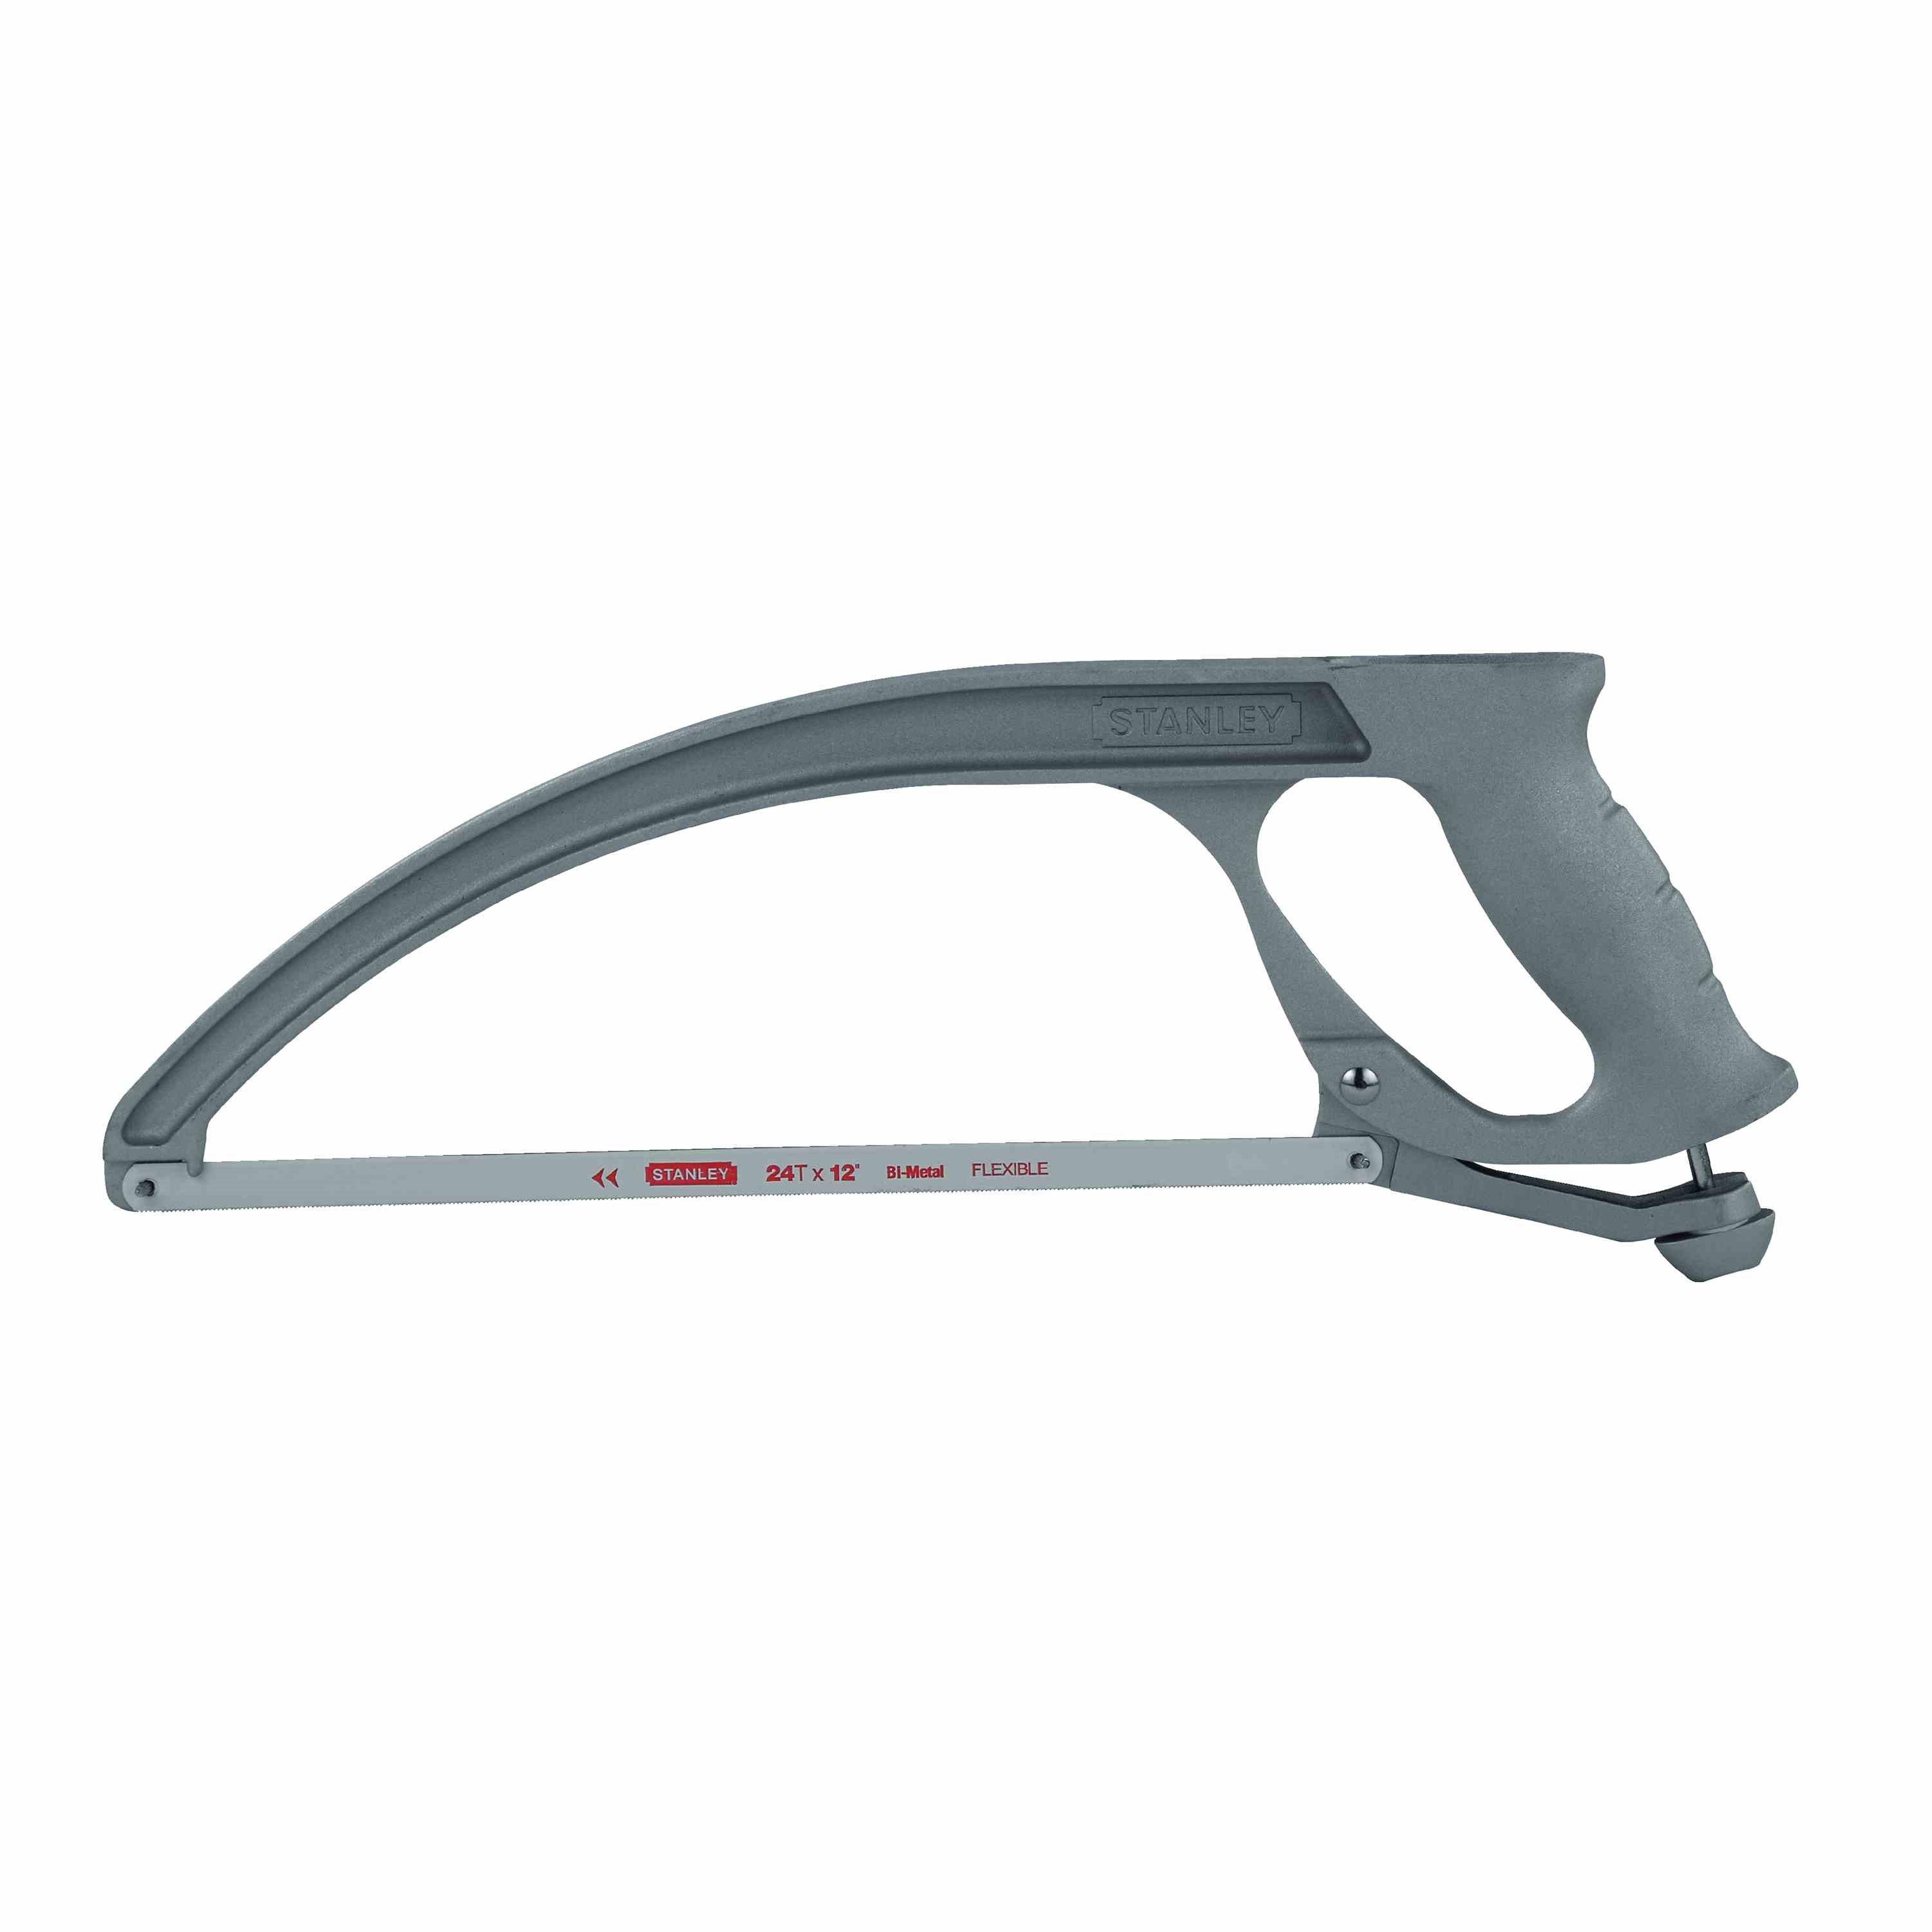 Stanley Tools - 12 in High TensionLow Profile Hacksaw - 20-001K